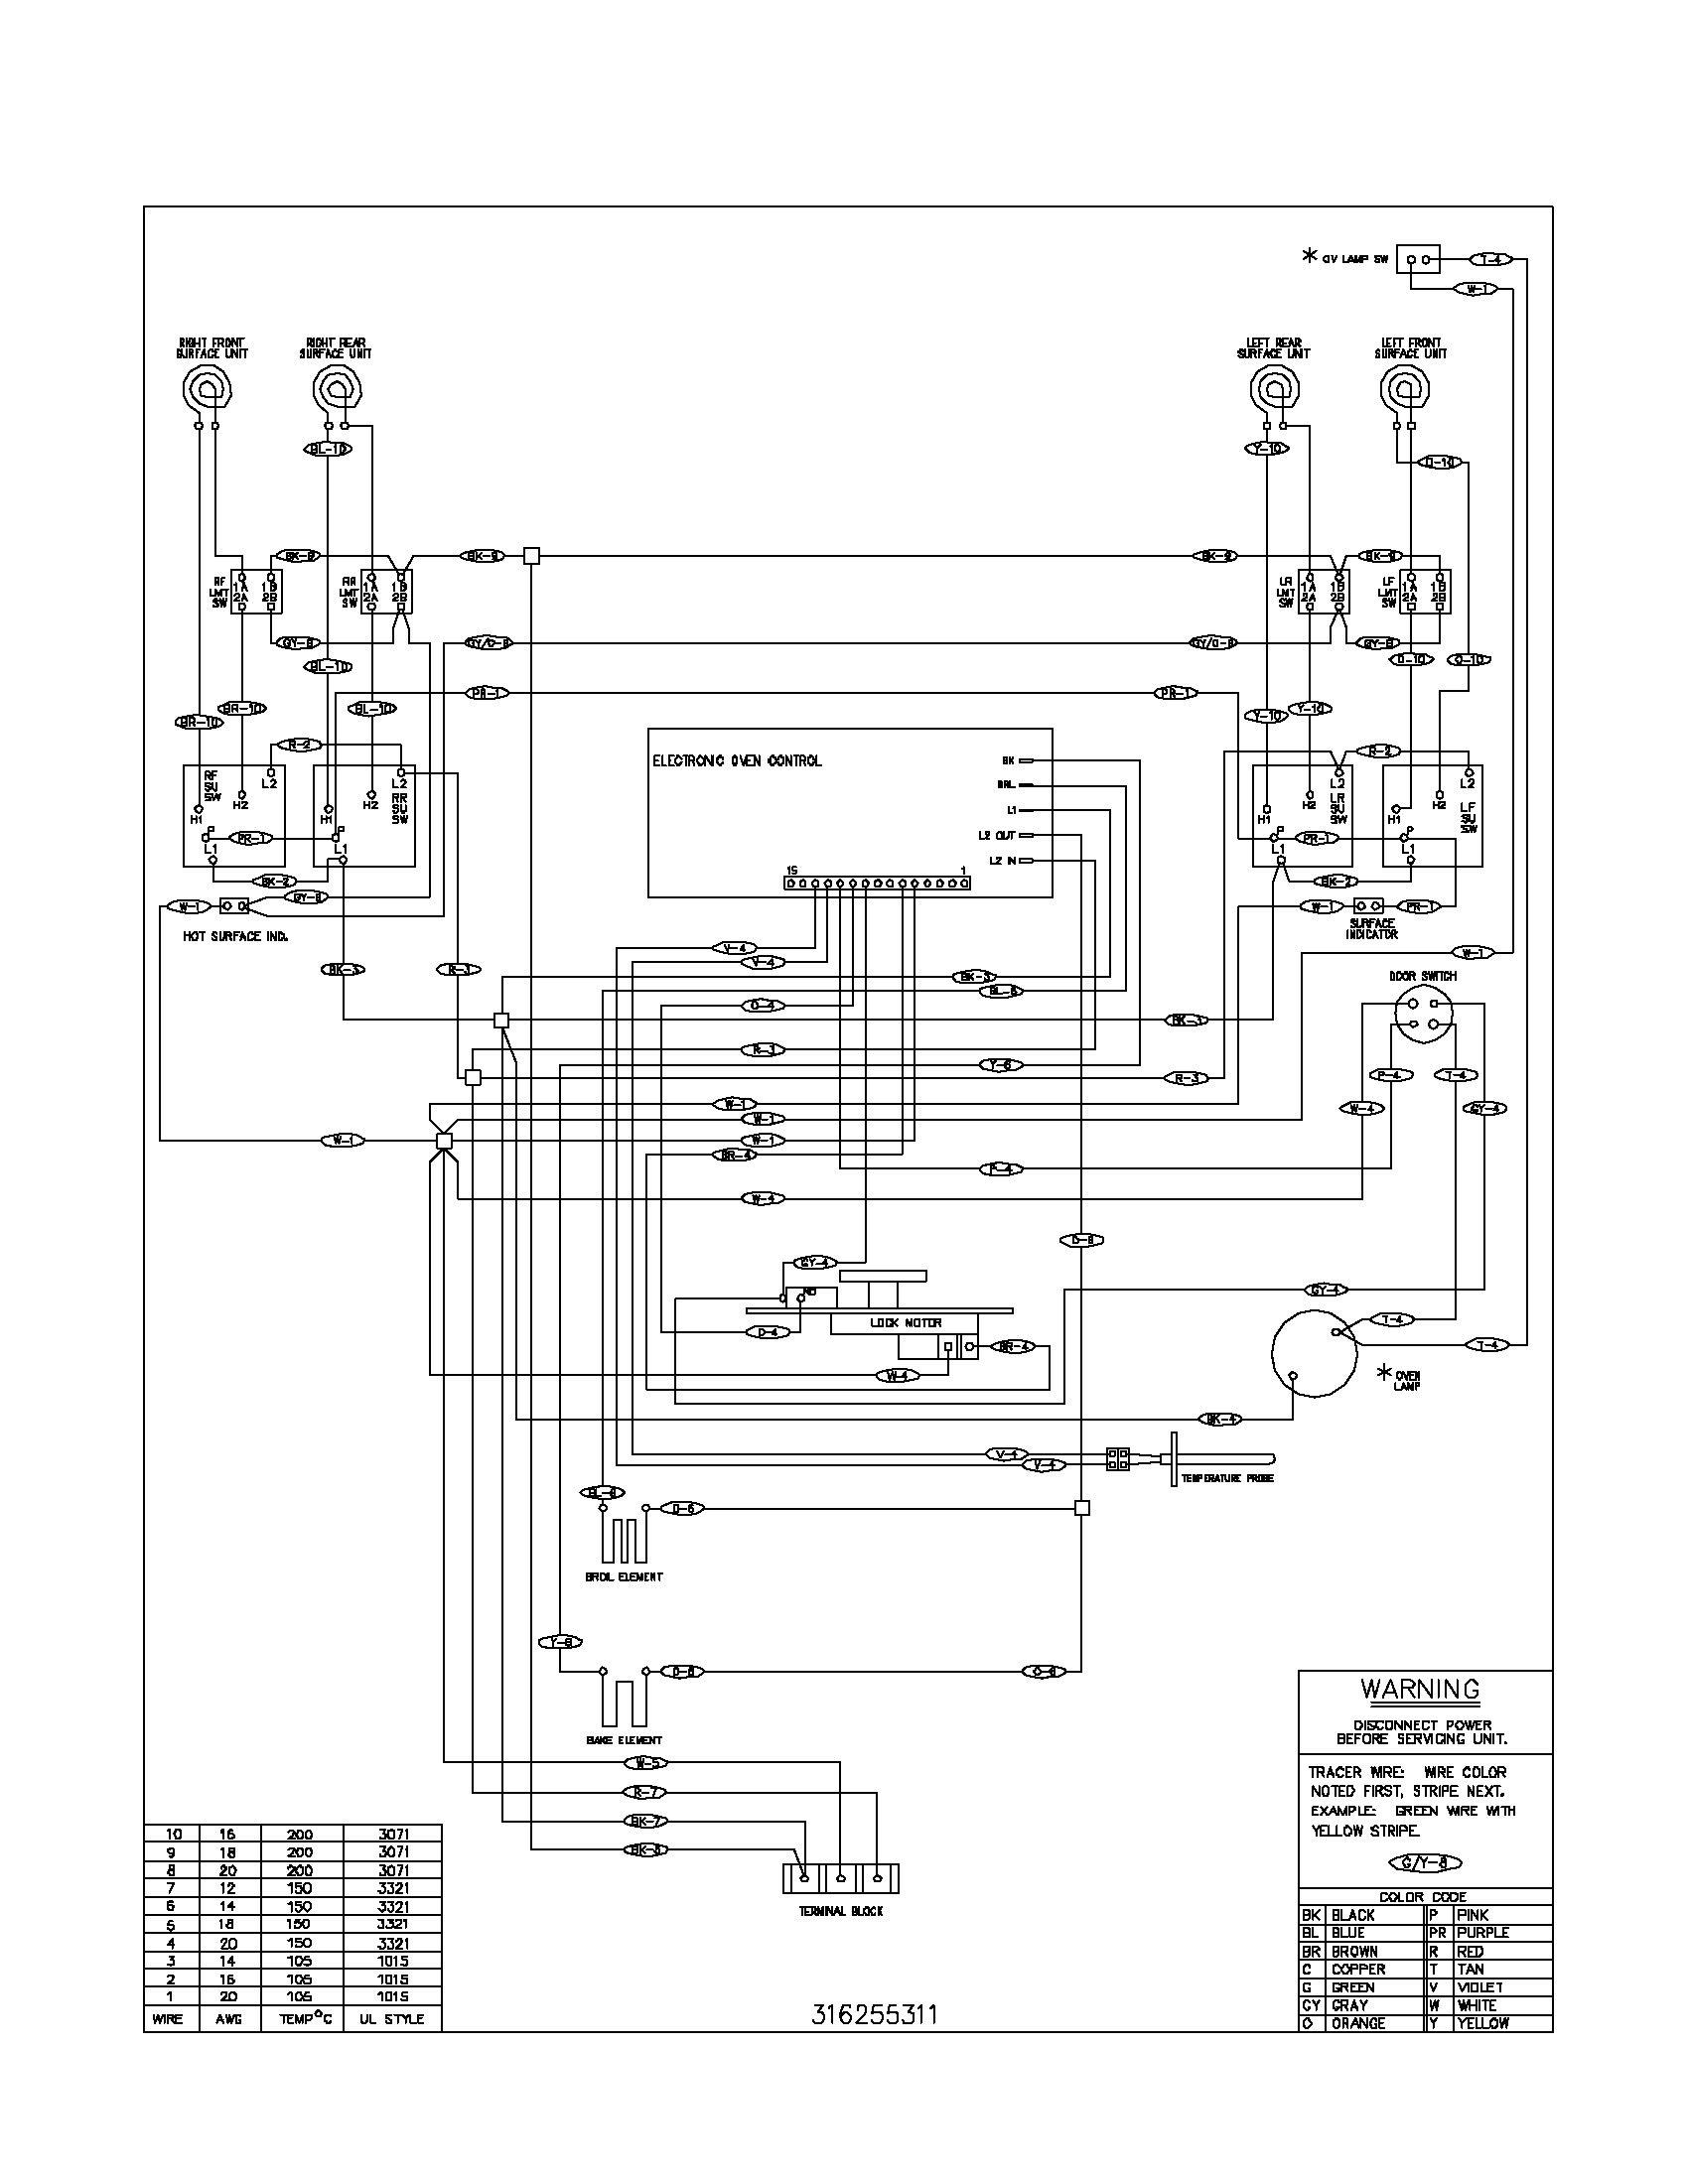 Wall Schematic Wiring